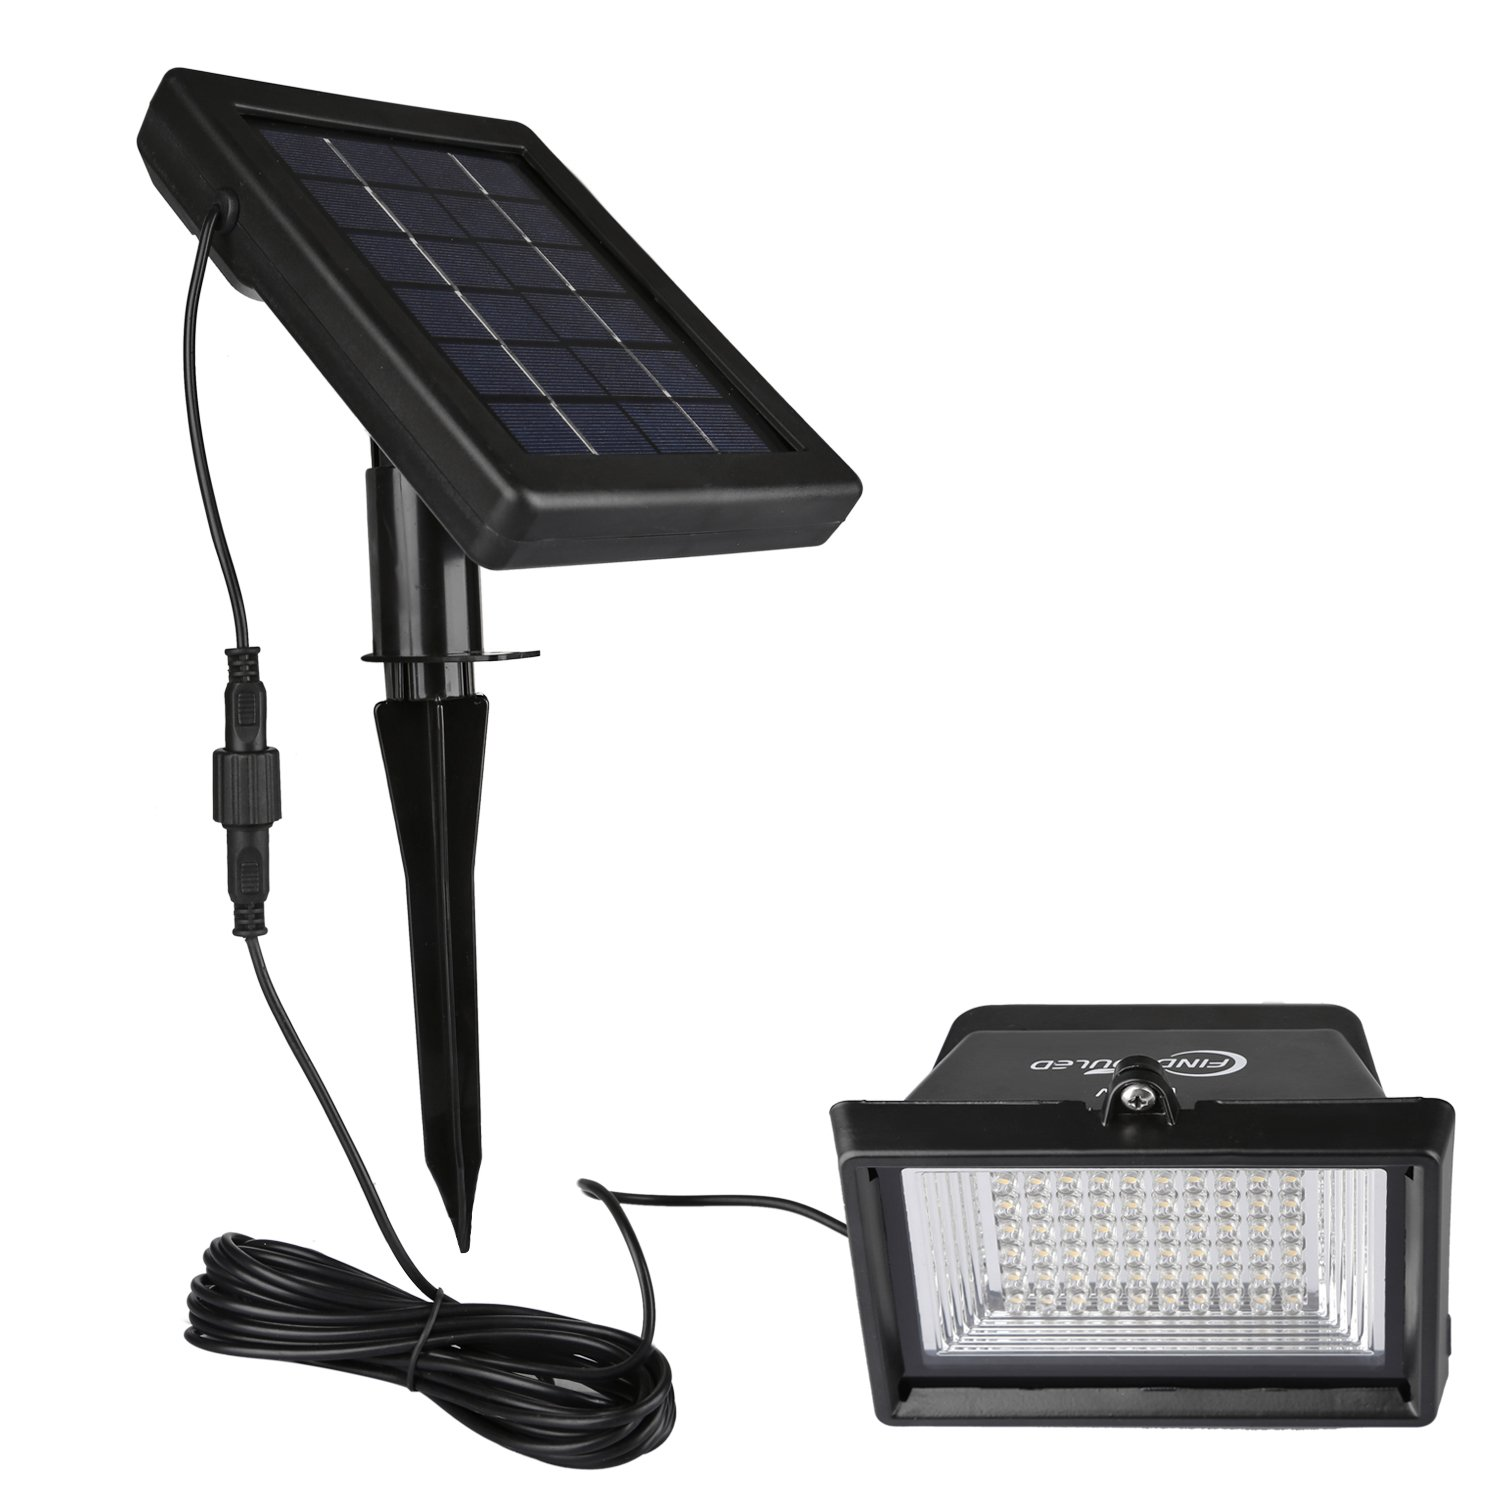 Findyouled Solar Powered Flood Light